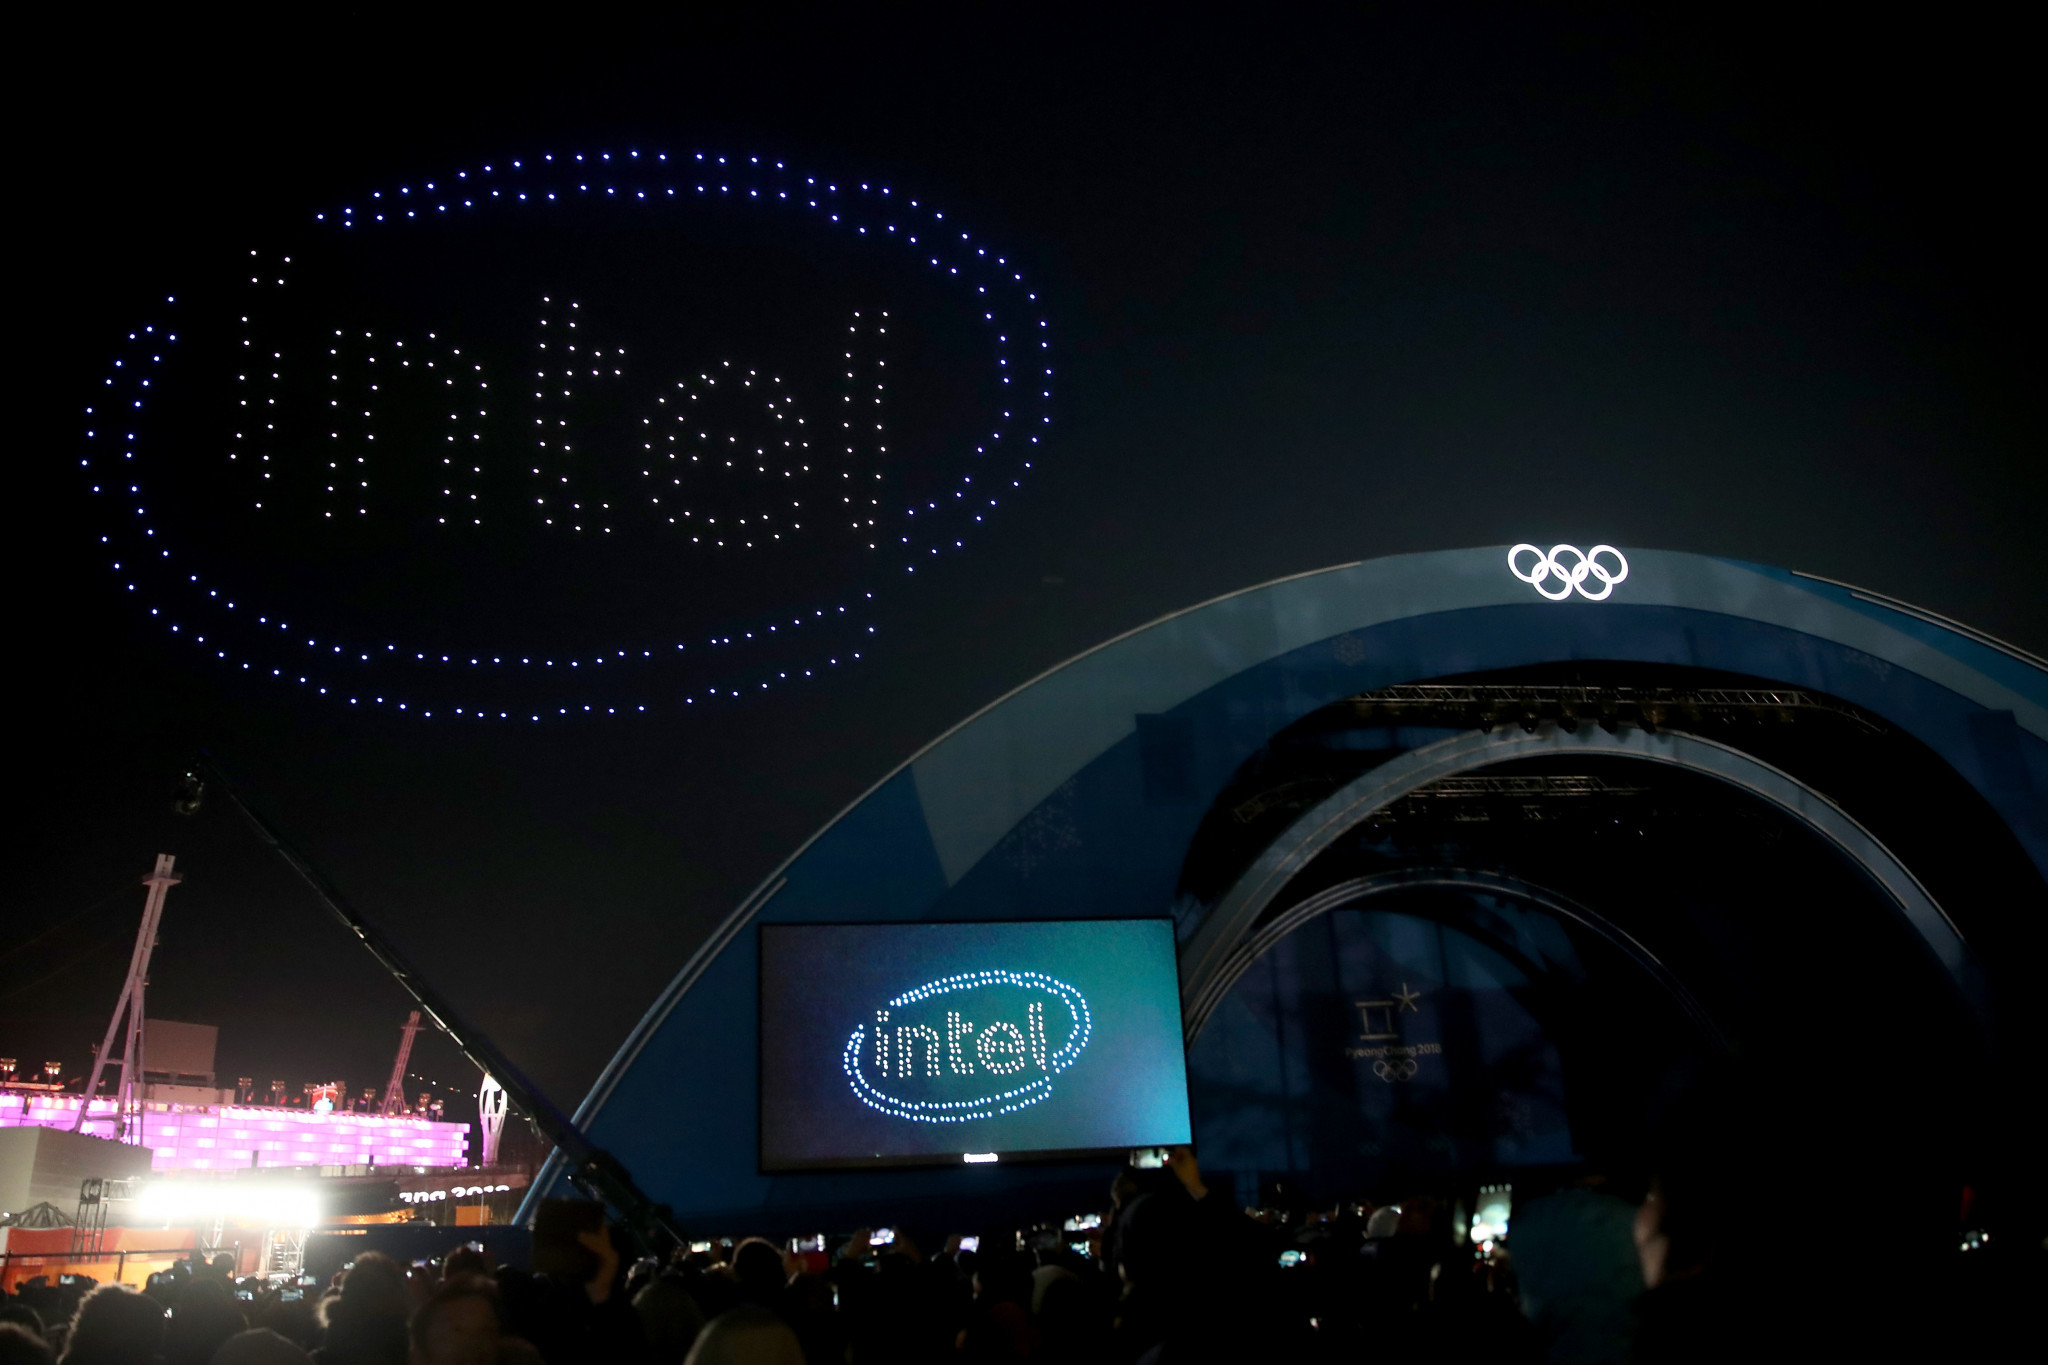 Intel asks for artificial intelligence innovations to enhance Tokyo 2020 experience